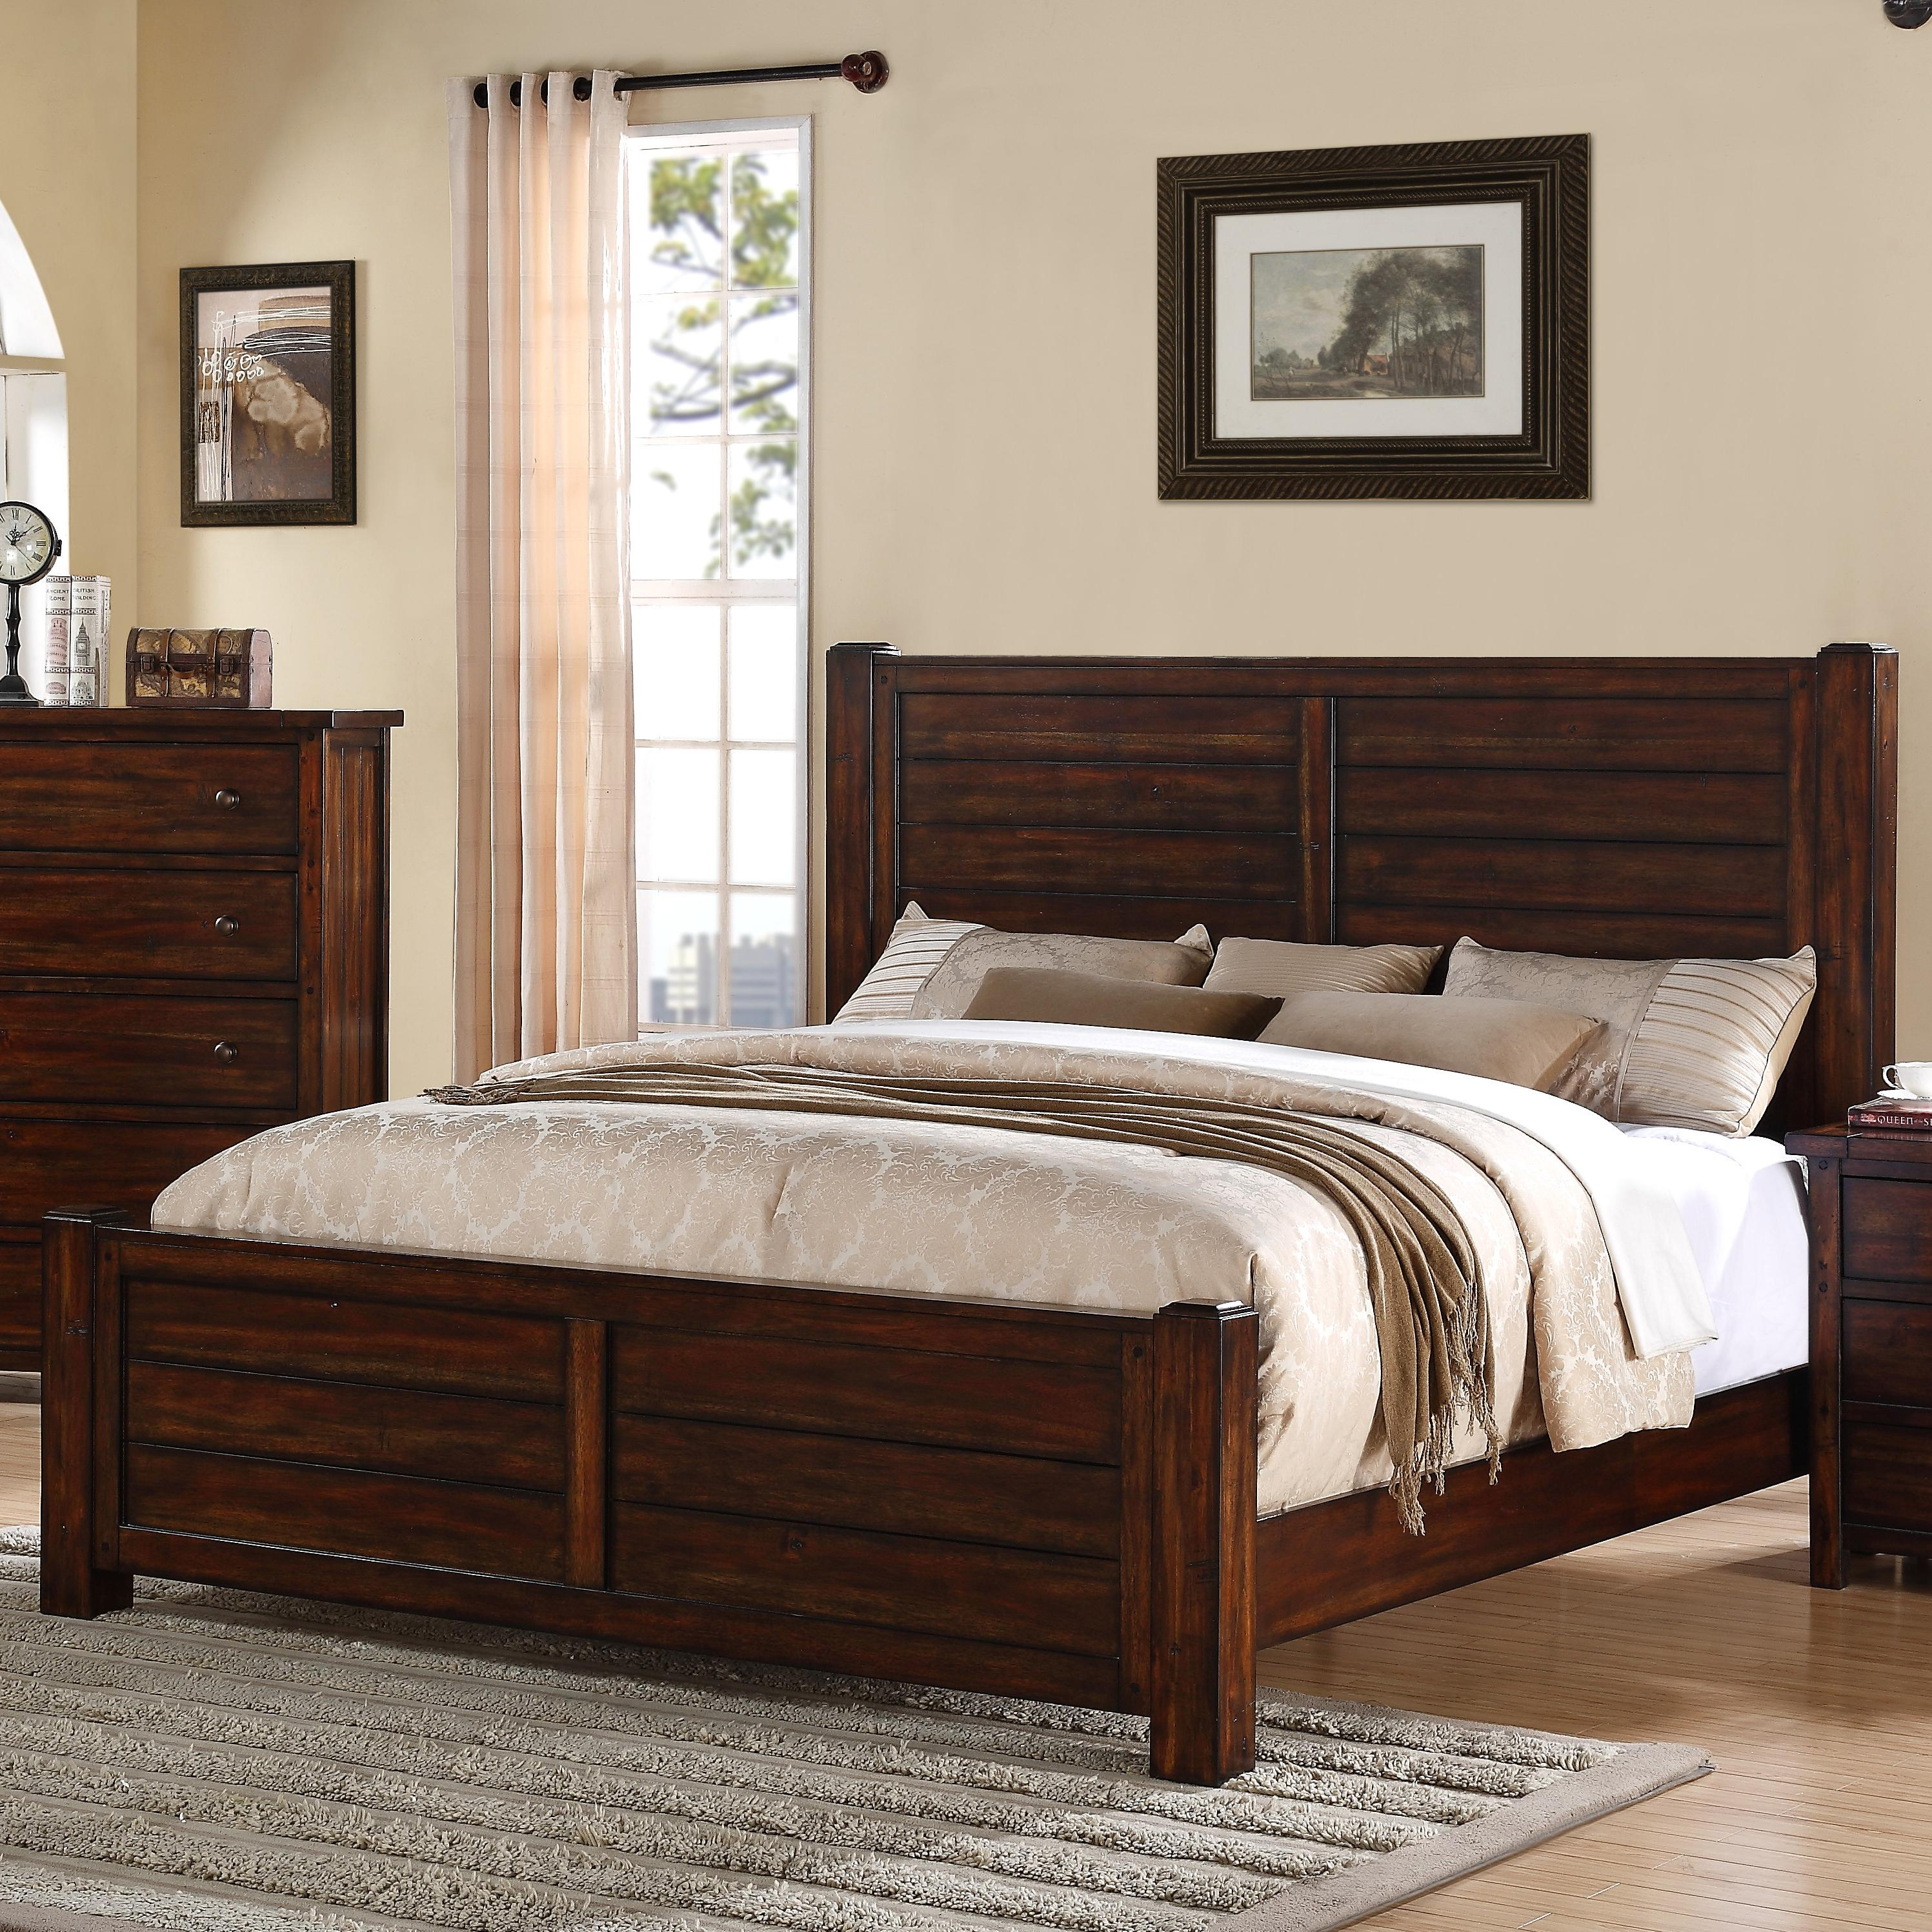 Beau Elements International Dawson Creek Queen Bed   Item Number: DS600QB